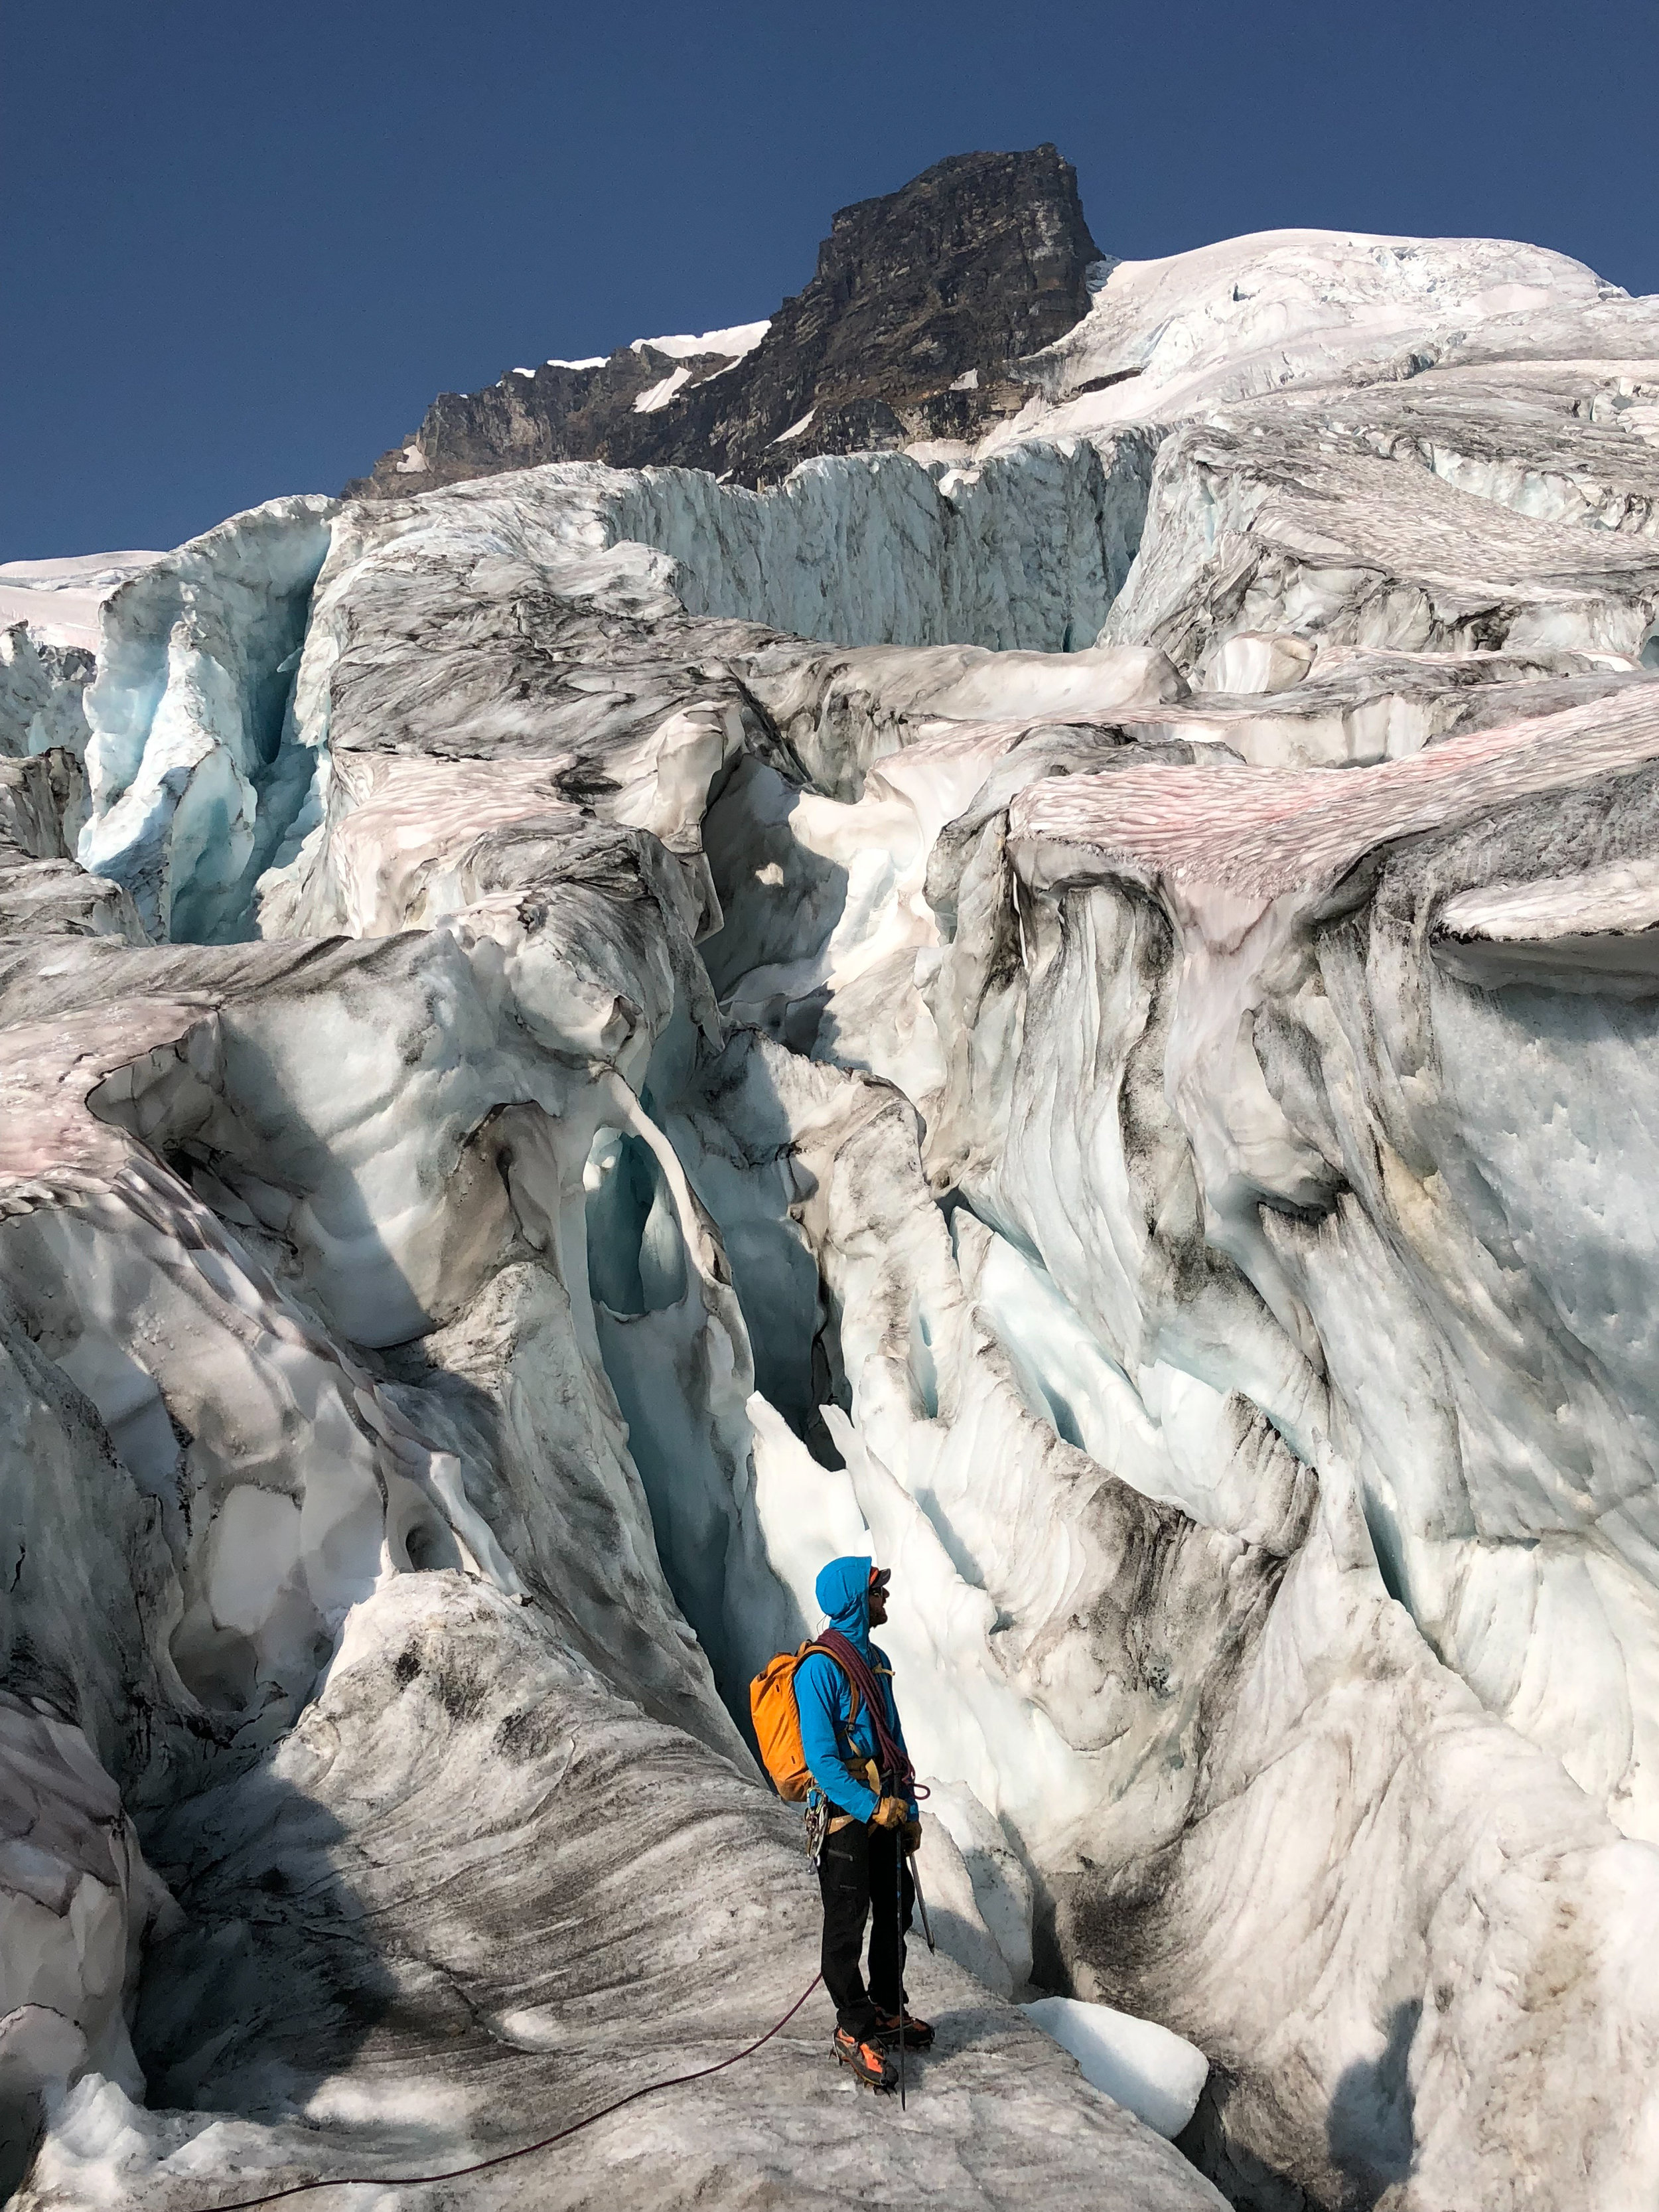 By that time the snow had melted off the glaciers exposing their inner beauty. We spent one day exploring the glacier as we couldn't find a route through it to the col, it was utterly sublime to wander through its wondrous melted shapes. That is our guide Ben Paradis on the glacier.  Photo: Sally Baydala.